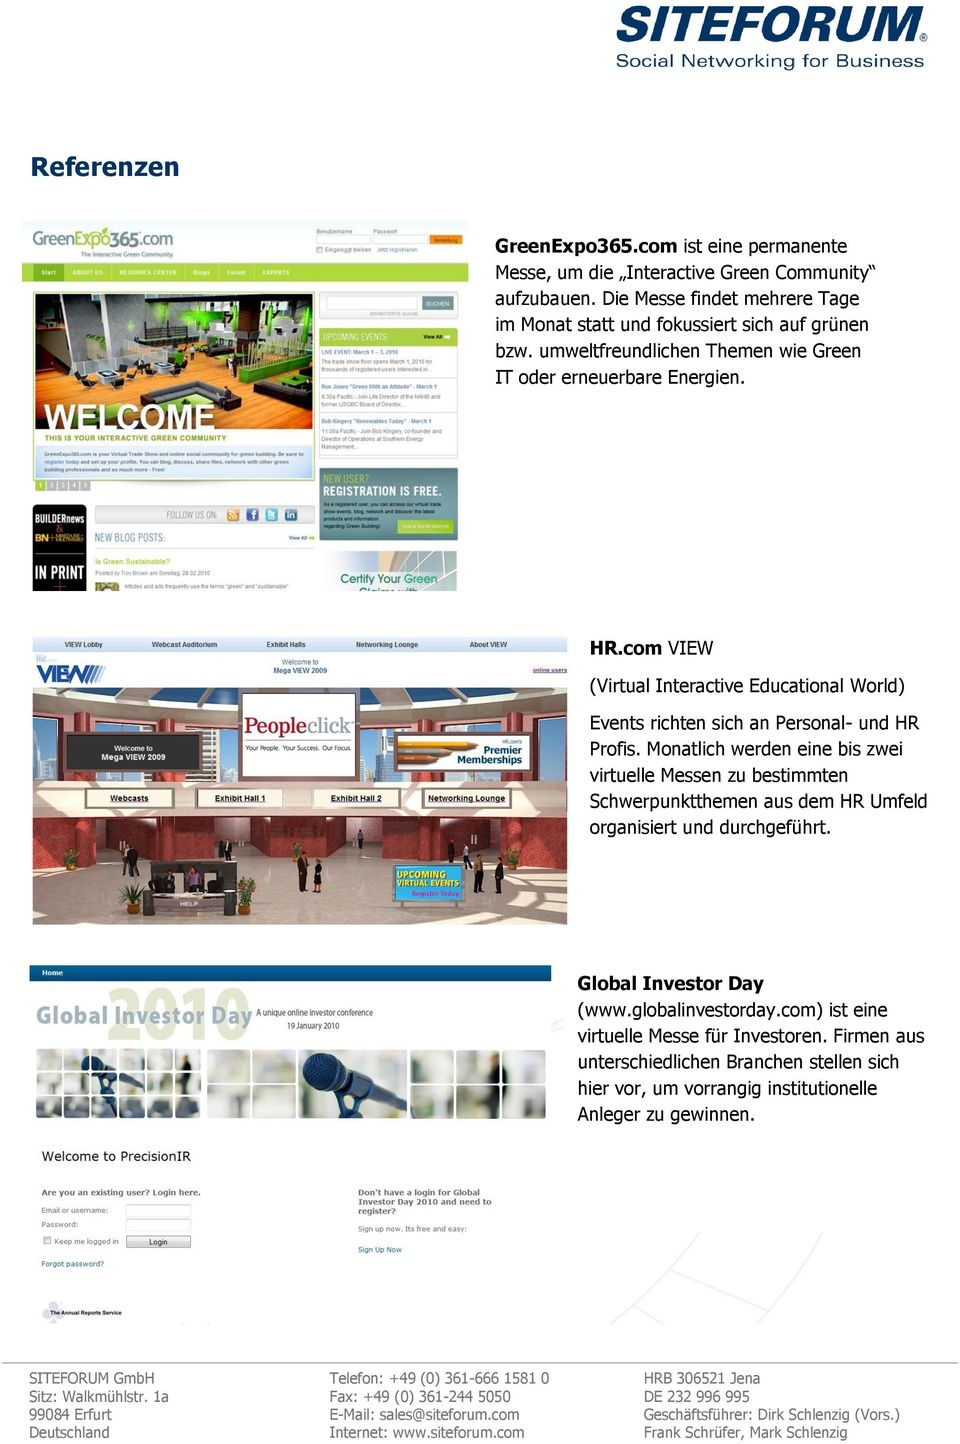 com VIEW (Virtual Interactive Educational World) Events richten sich an Personal- und HR Profis.